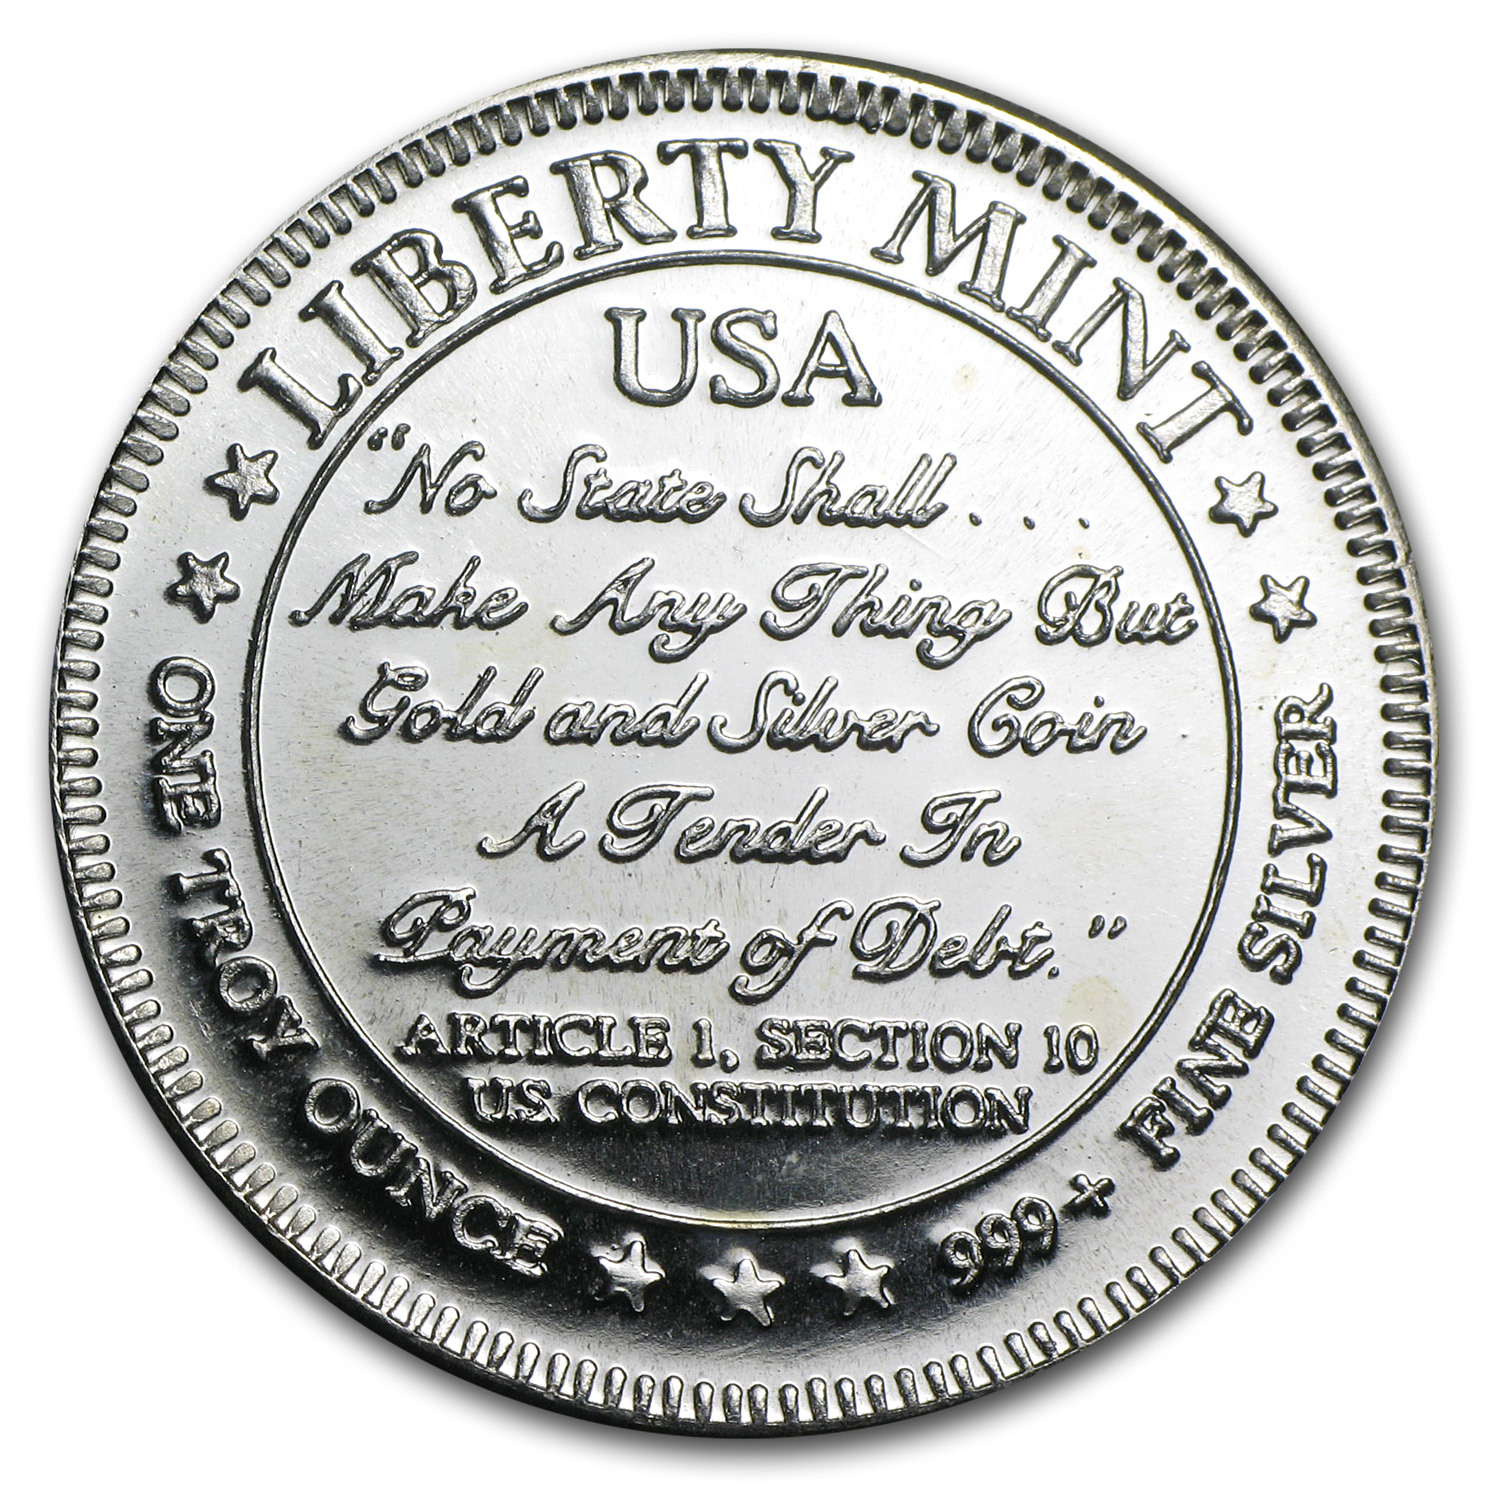 1 oz Silver Rounds - Liberty Mint